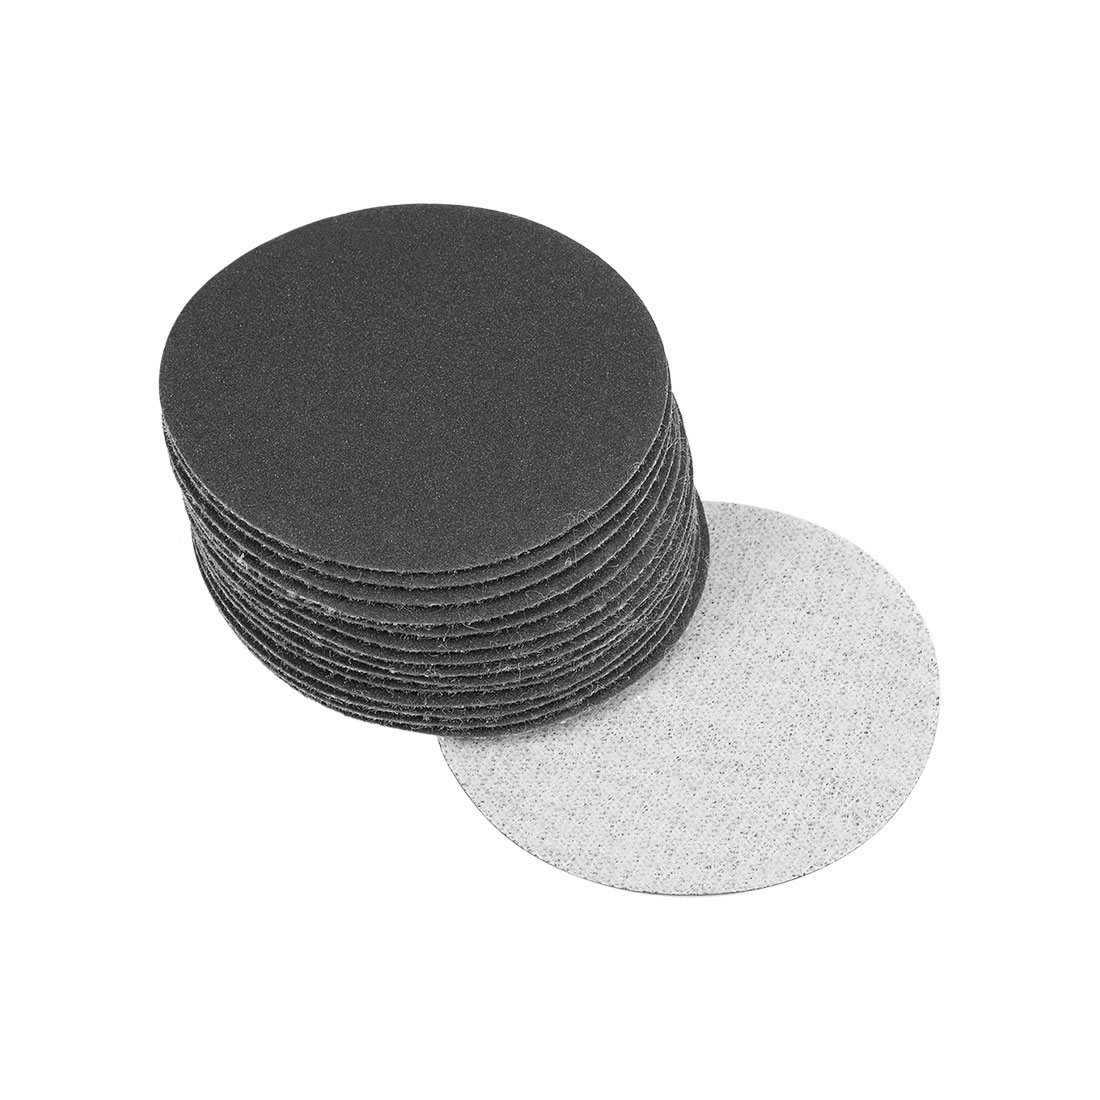 2 inch Wet Dry Discs 320 Grit Hook and Loop Sanding Discs Silicon Carbide 15pcs